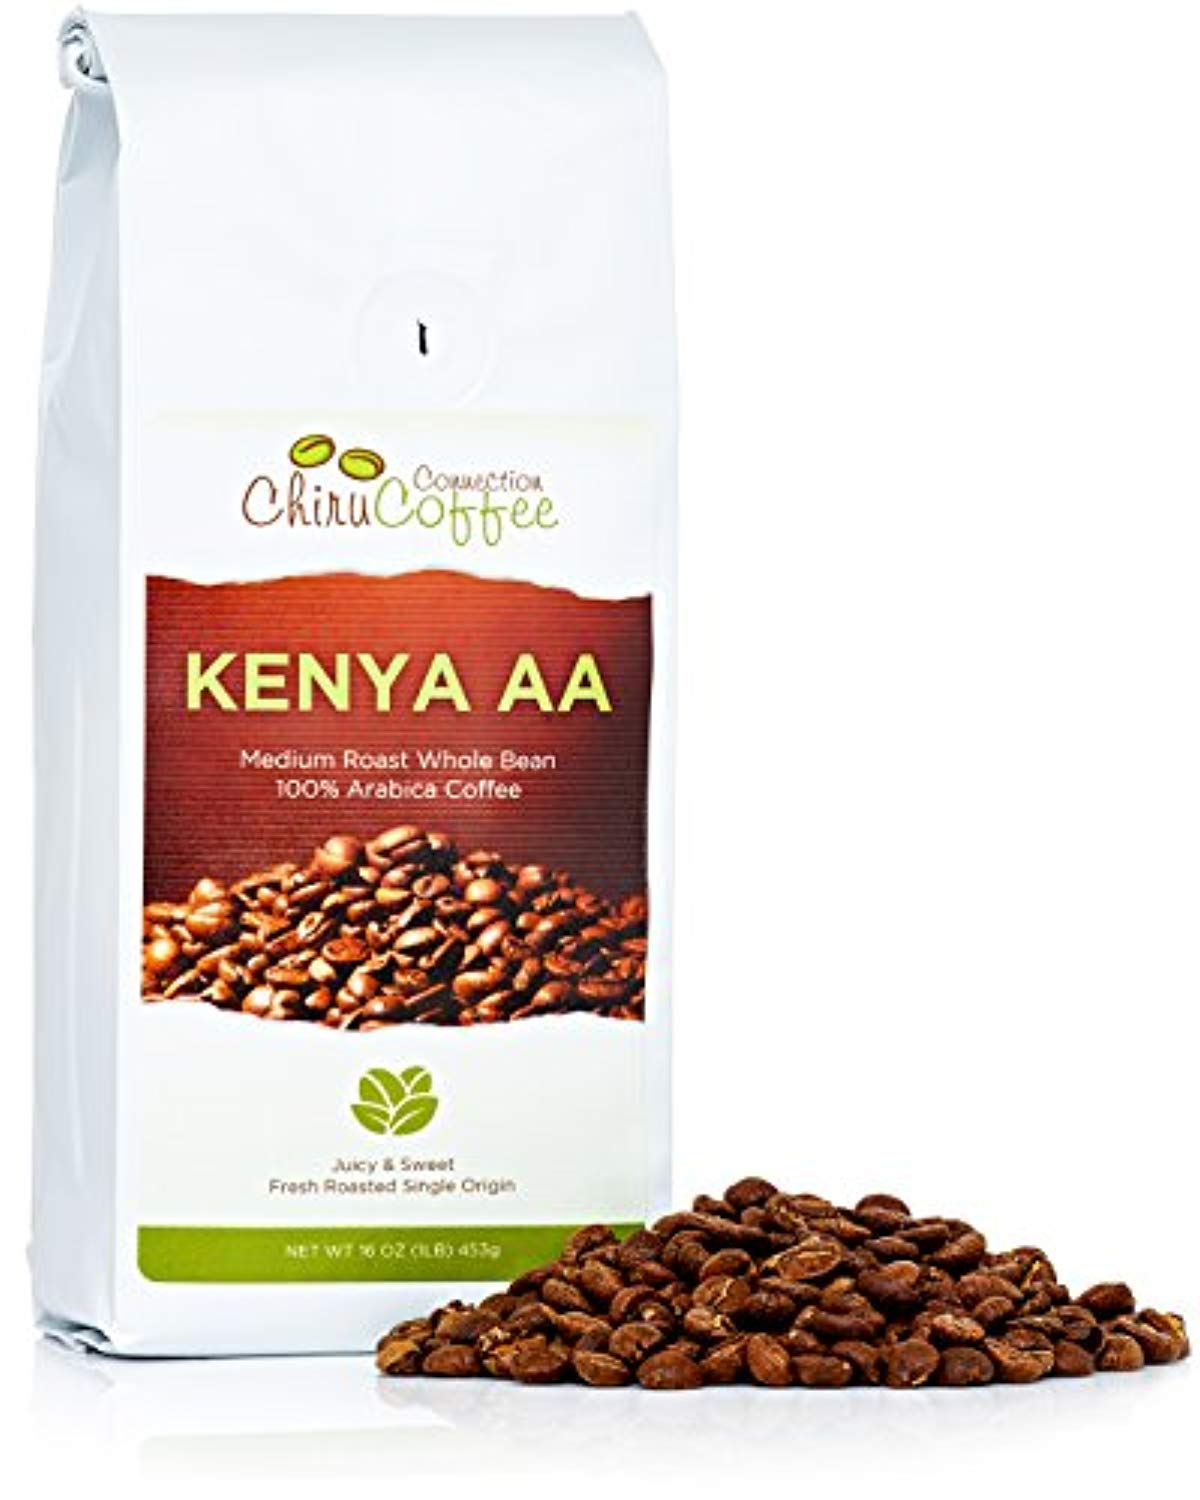 Chiru Coffee Connection Fresh Roasted Kenya's Finest AA Roasted Whole Bean Arabica Coffee, 16 oz, Bag 1 lb - Ufumbuzi - Home